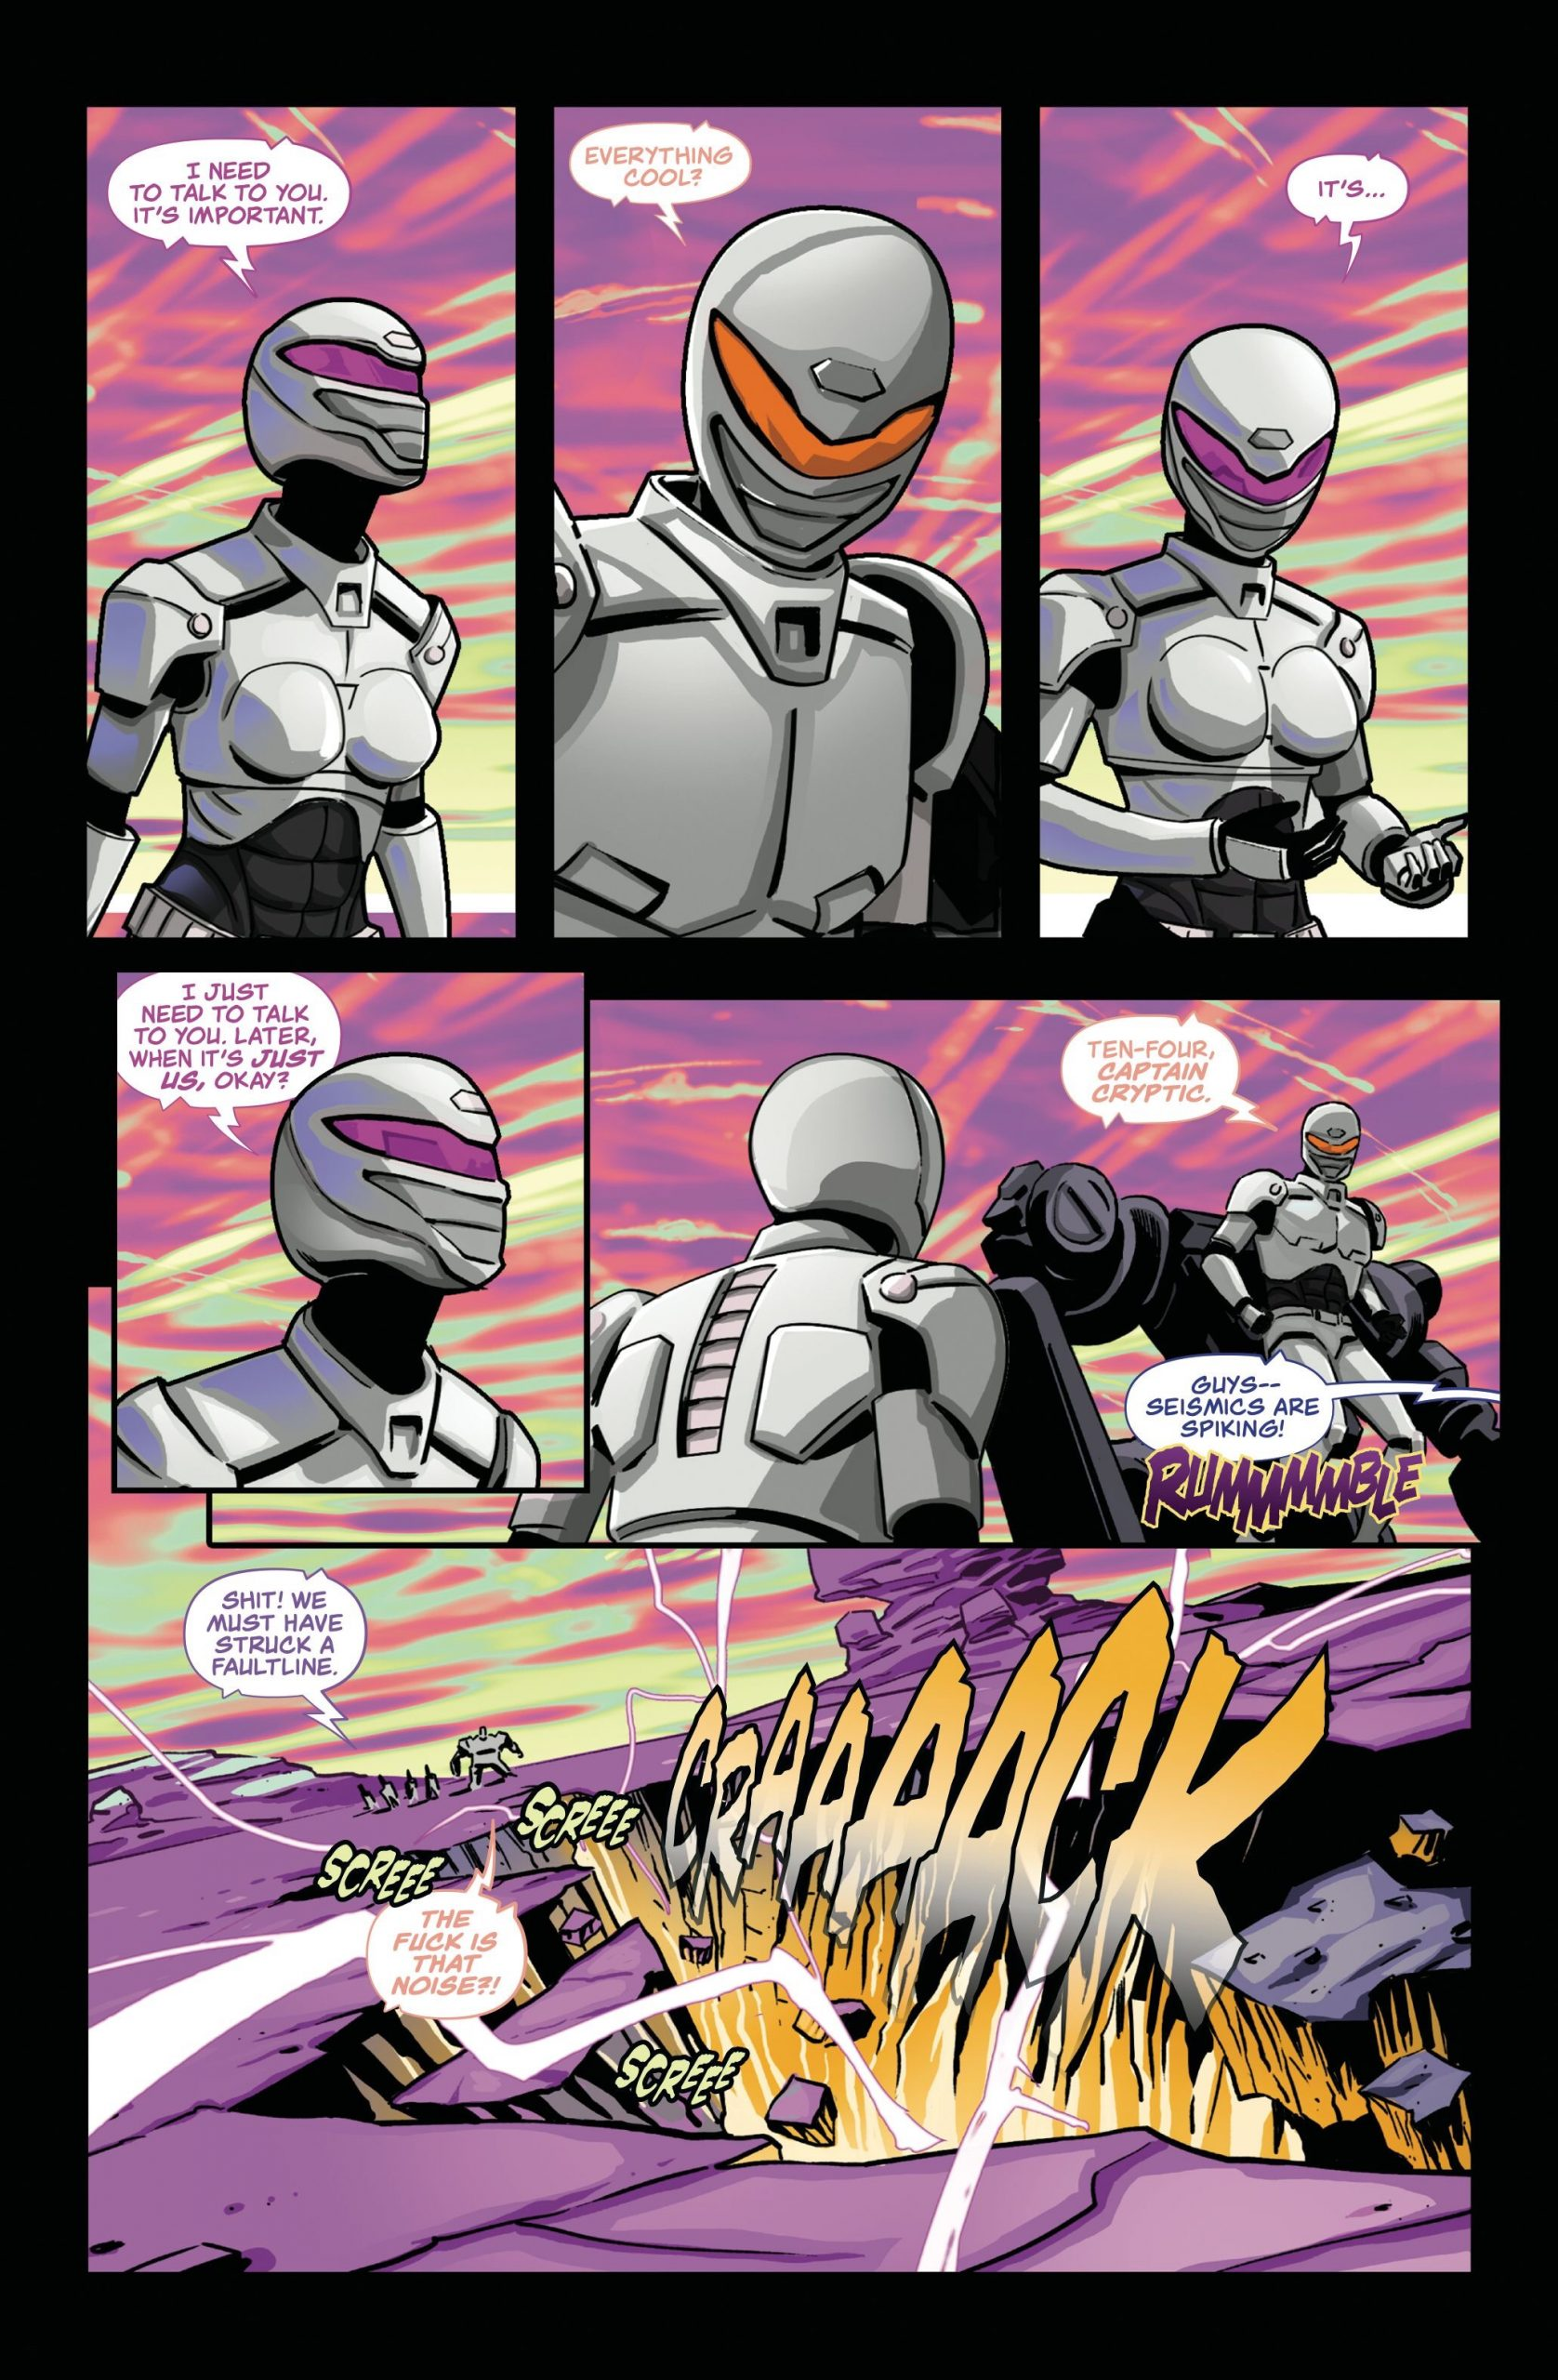 Indie comic news, Power Rangers meets Aliens in Unborn from Frank Gogol and Source Point Press, The Indie Comix Dispatch